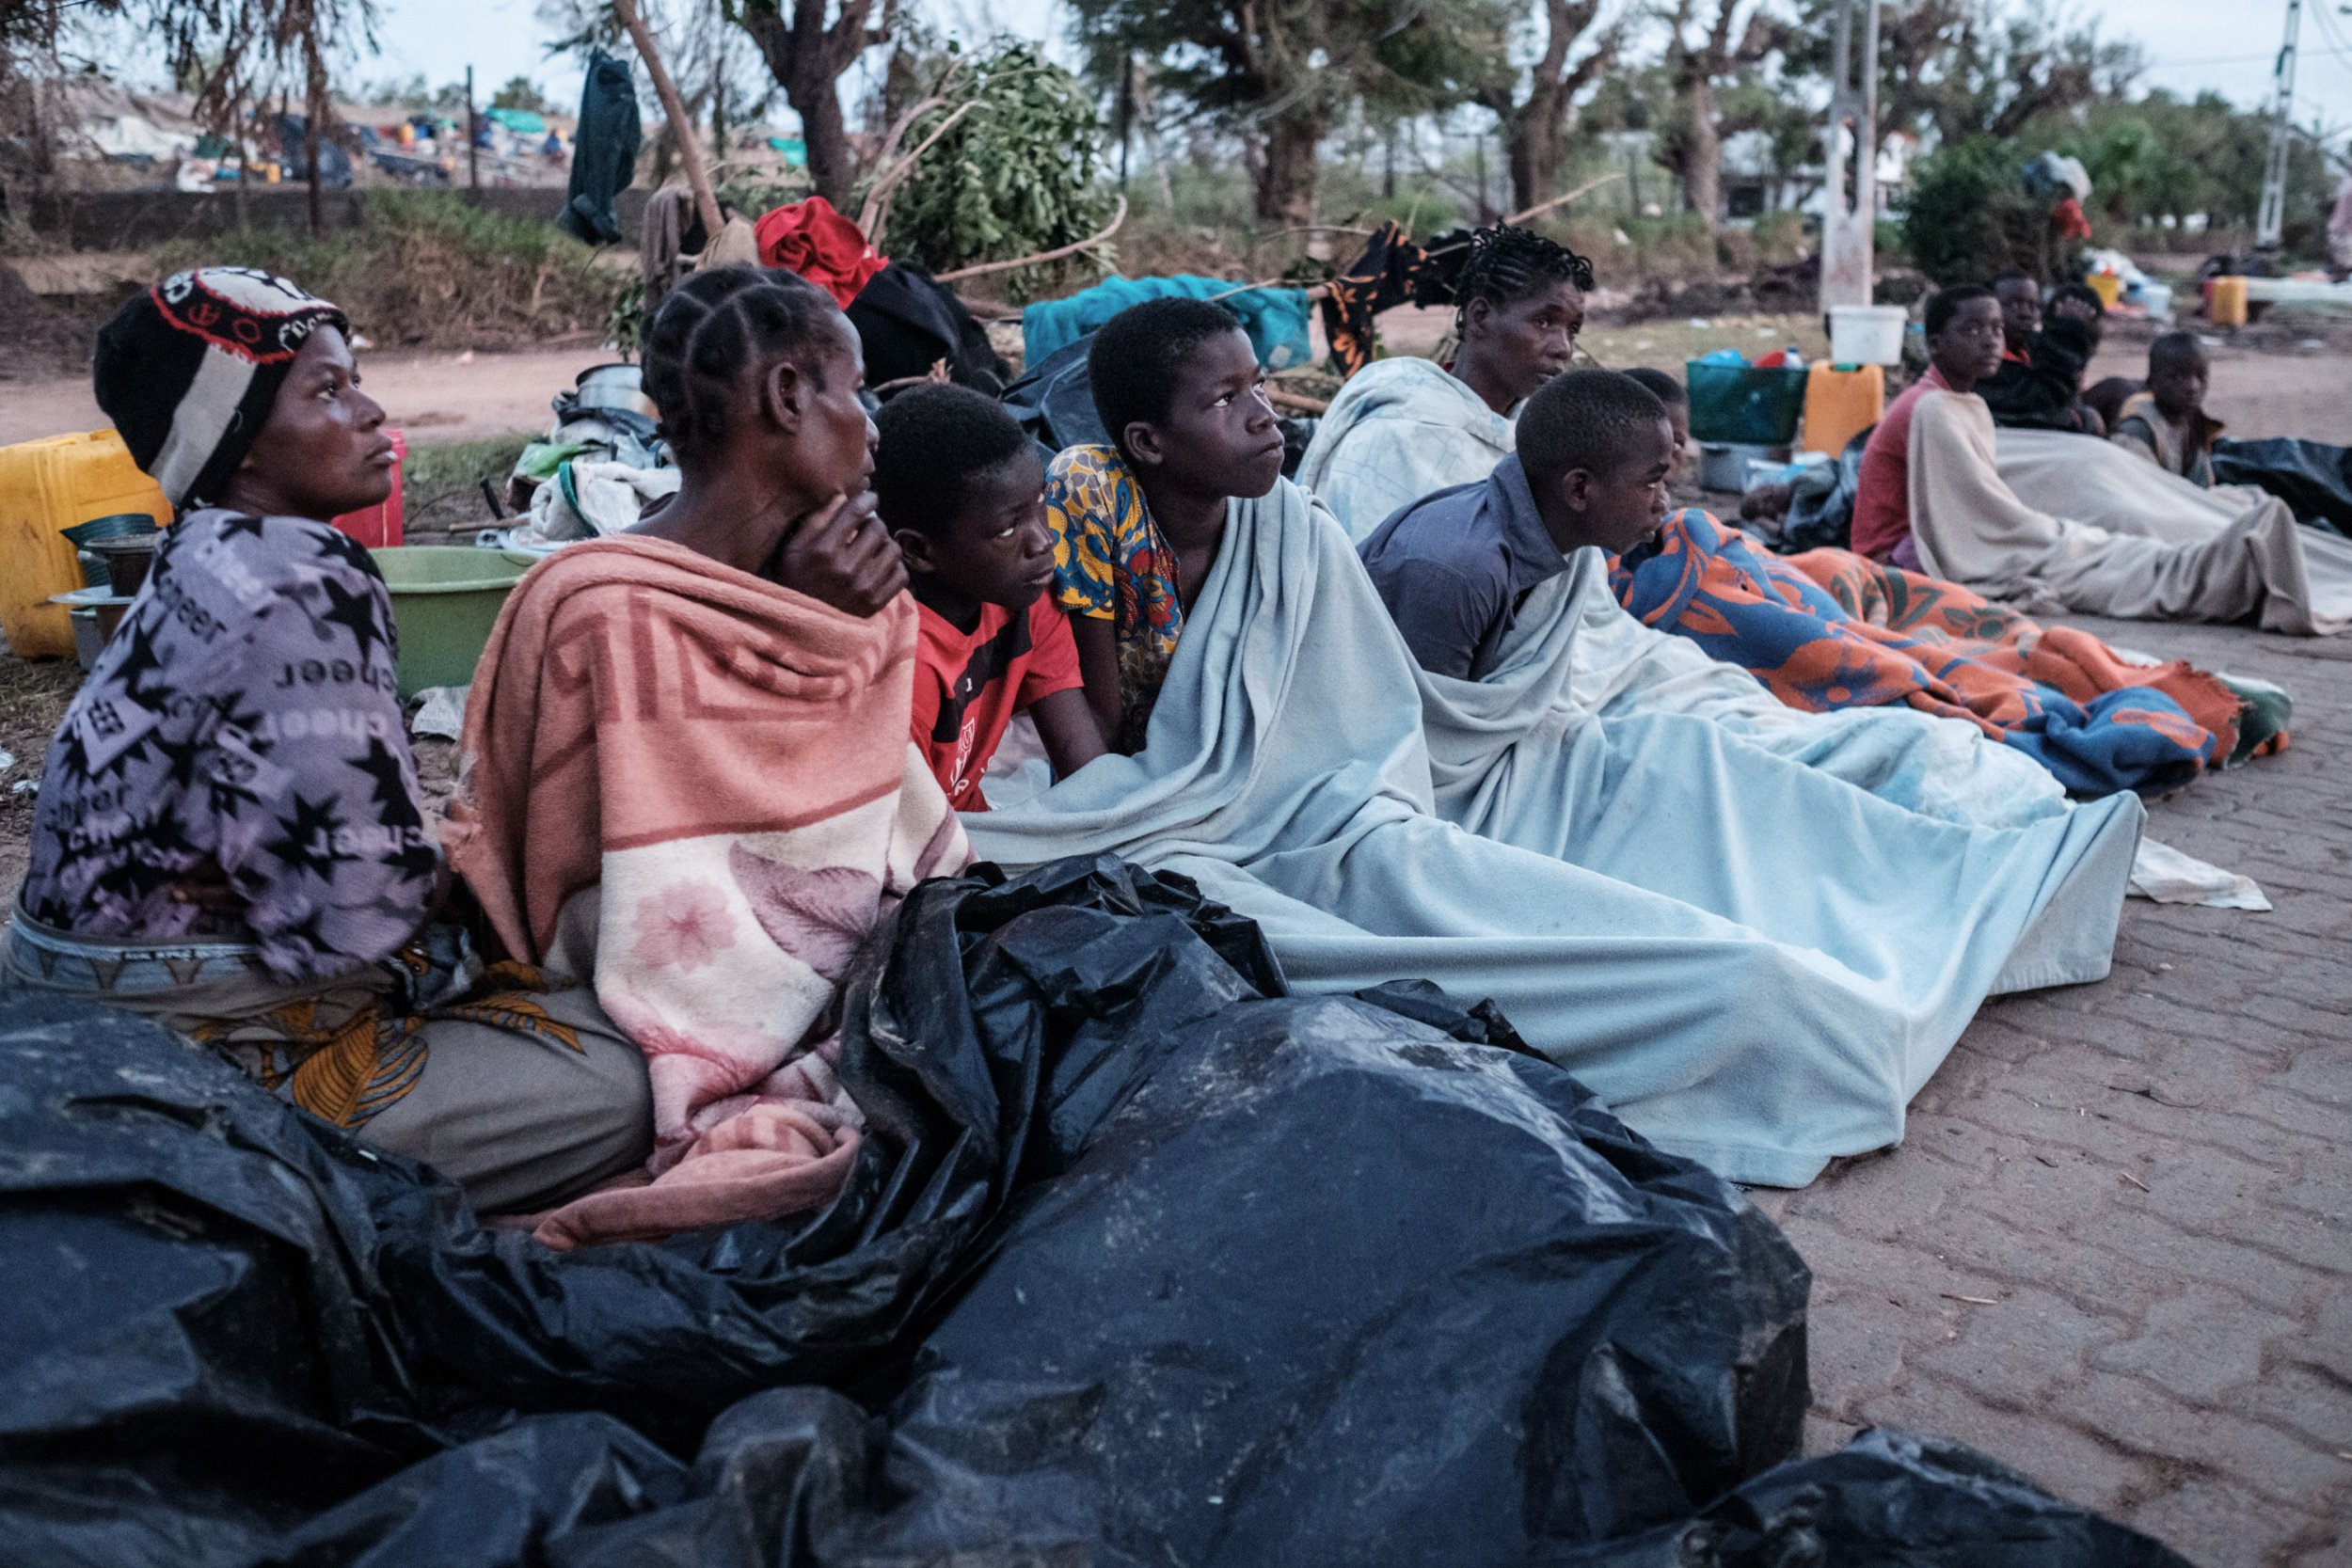 Cyclone Idai has devastated our lives and we can't recover without the world's help